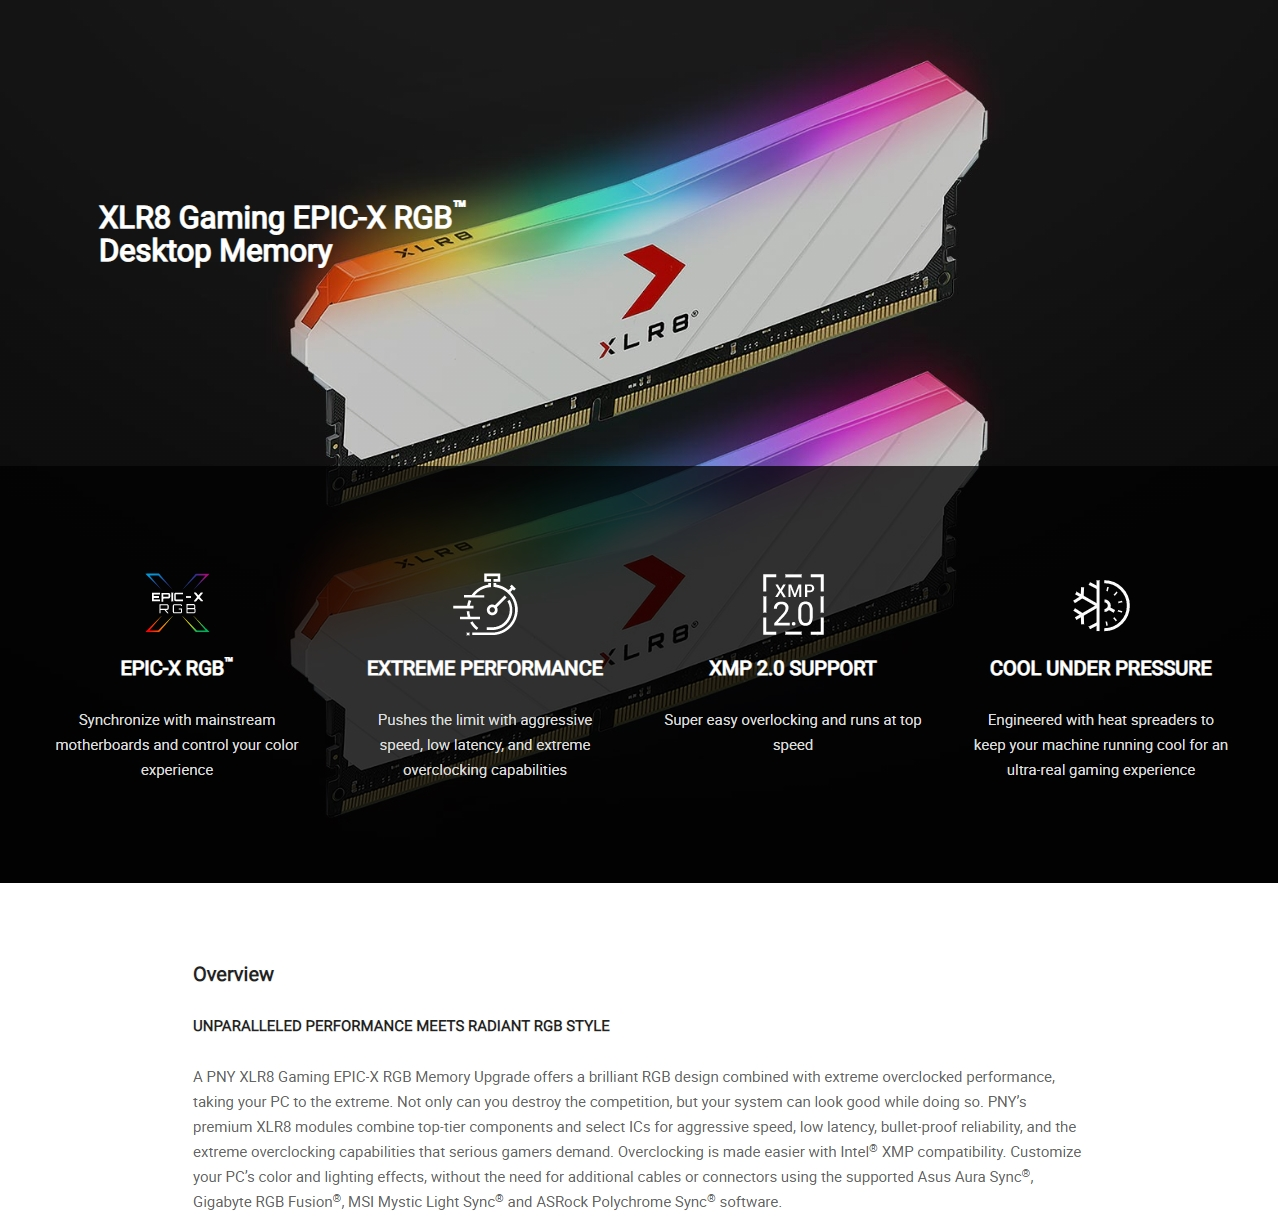 A large marketing image providing additional information about the product PNY XLR8 16GB (2x8GB) EPIC-X RGB Gaming DDR4 C18 3600Mhz - White Edition - Additional alt info not provided